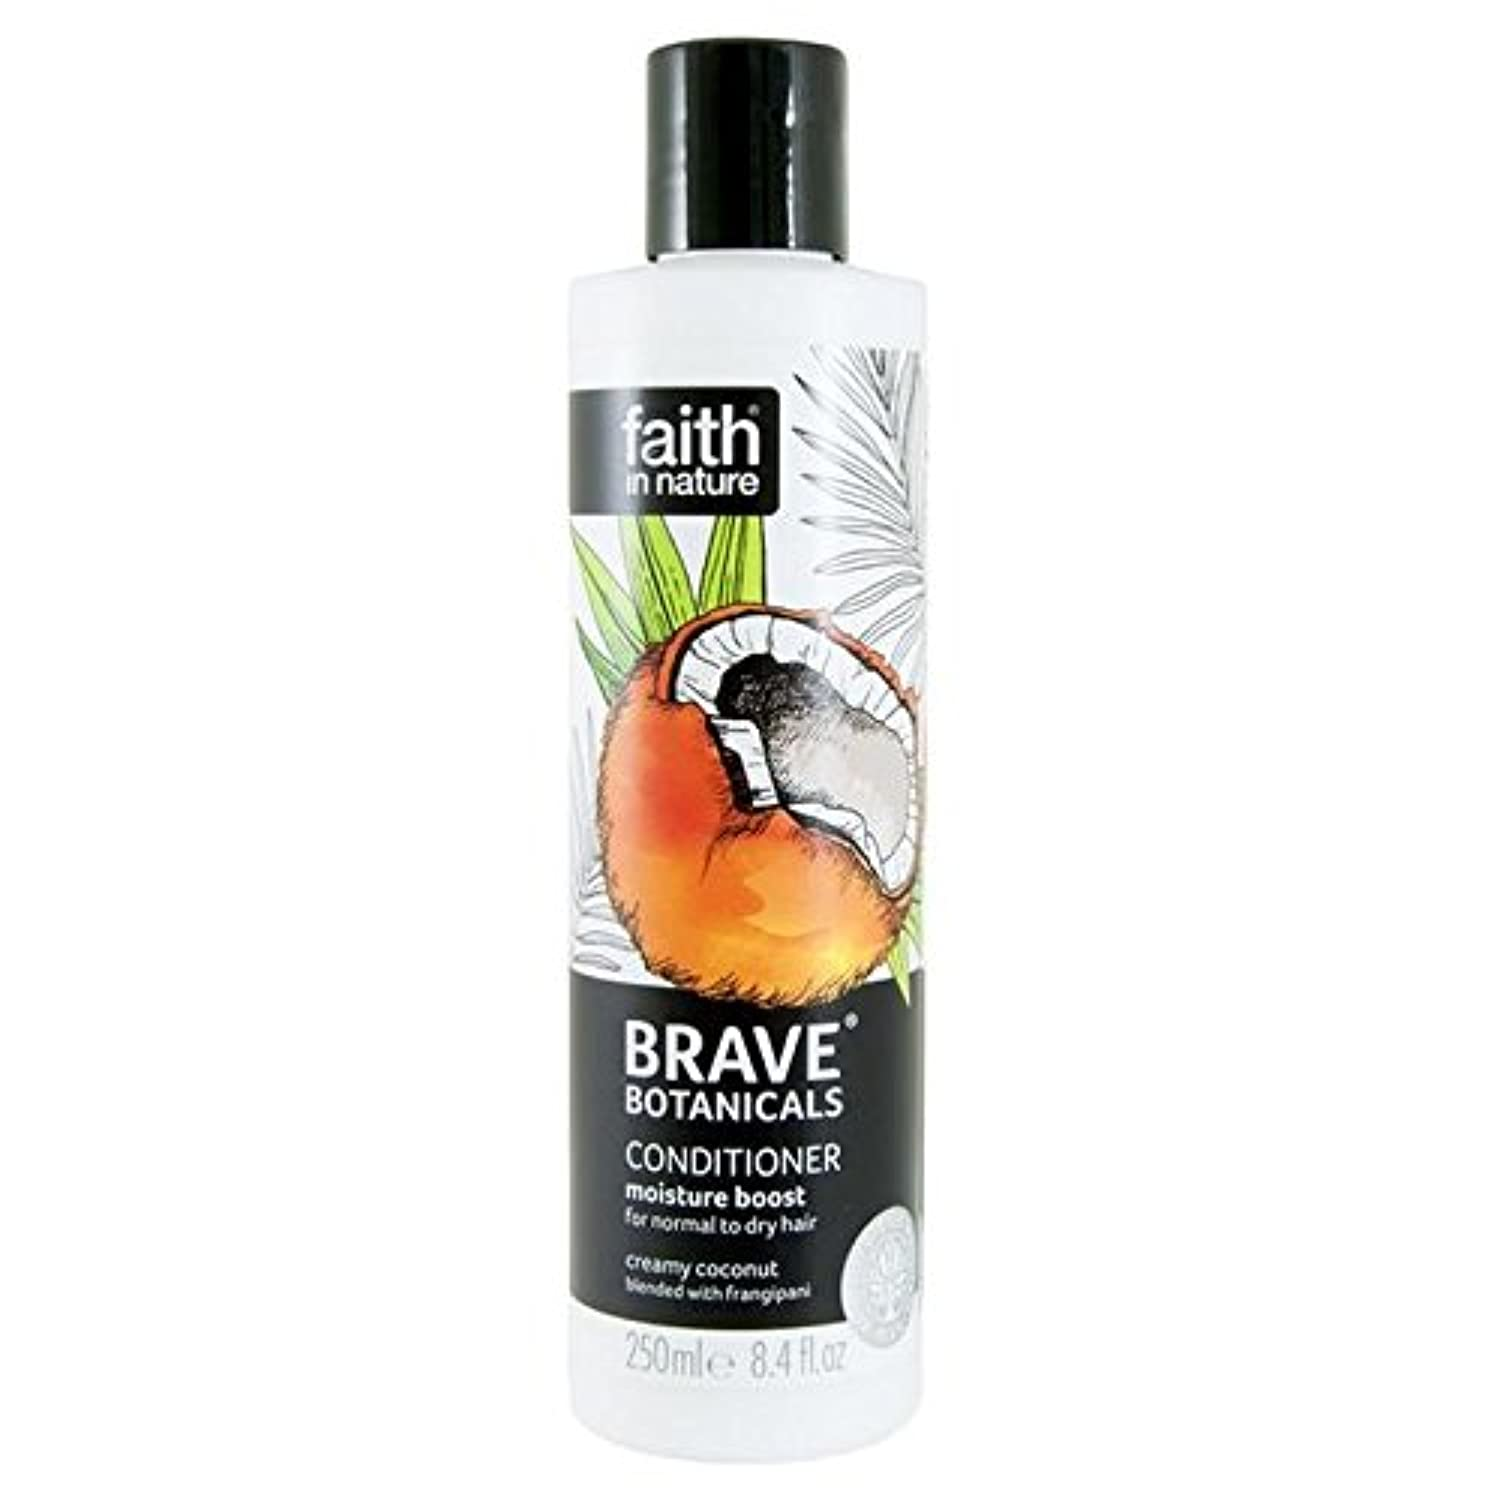 連鎖戦艦子Brave Botanicals Coconut & Frangipani Moisture Boost Conditioner 250ml (Pack of 2) - (Faith In Nature) 勇敢な植物ココナッツ...